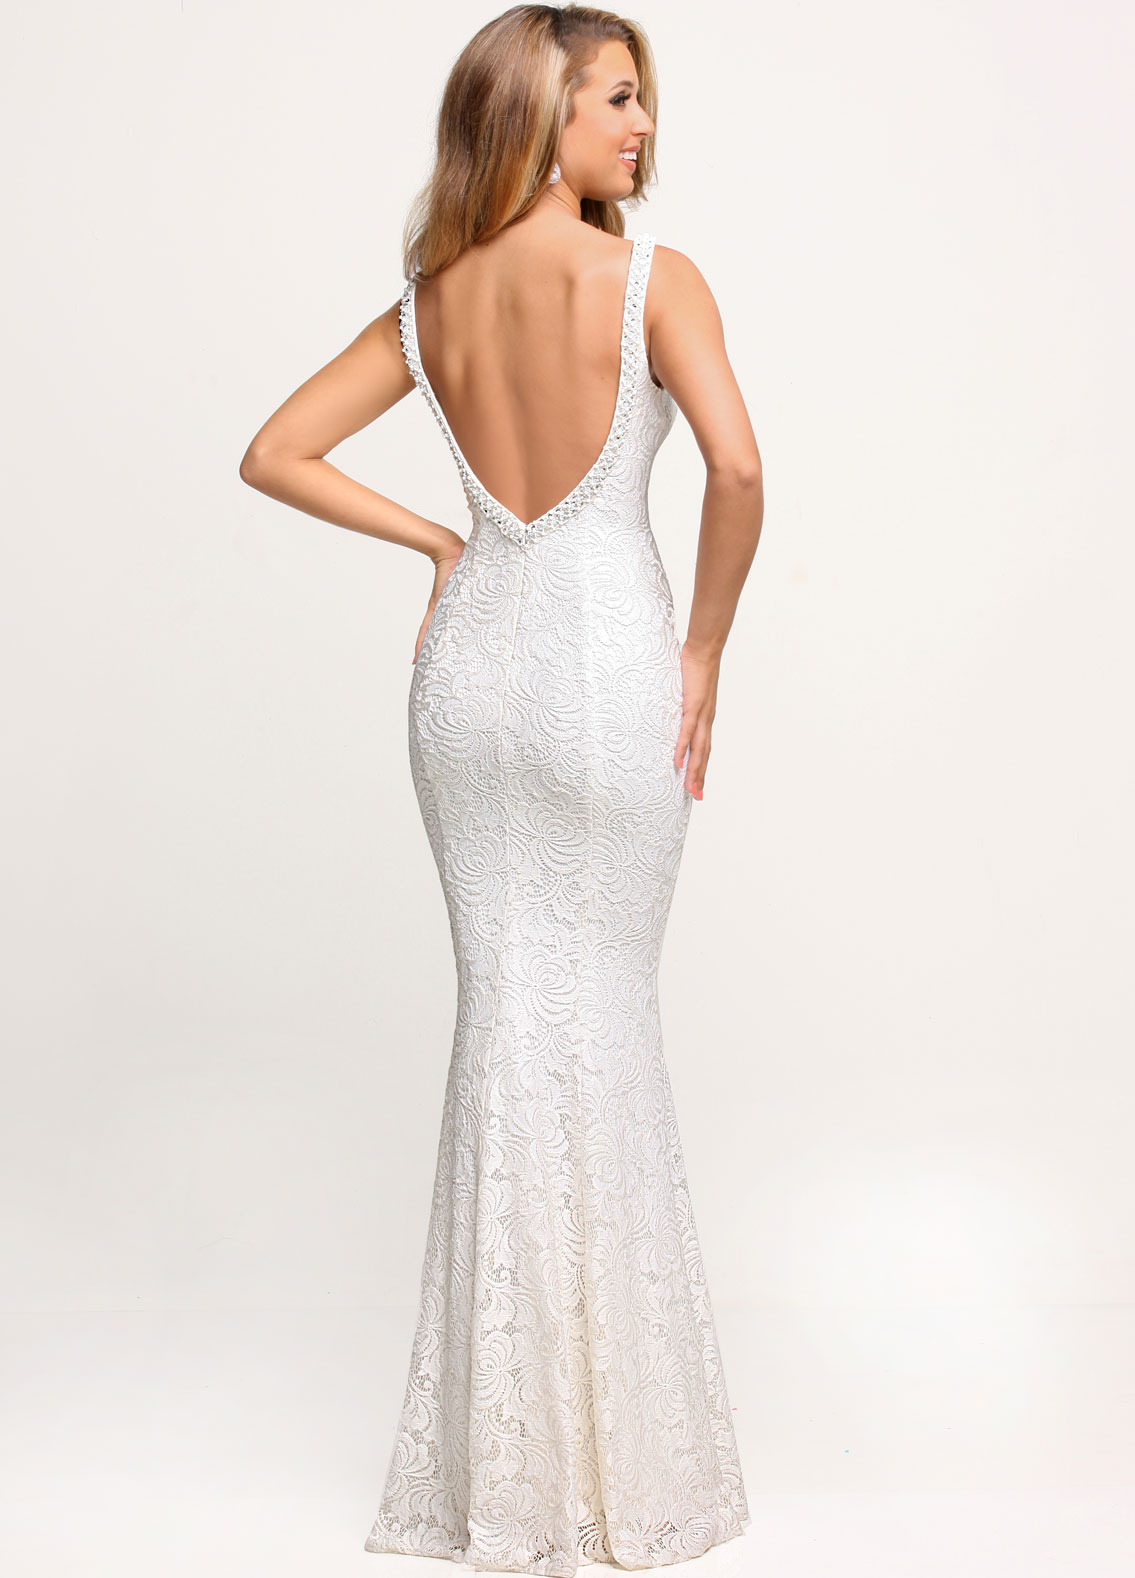 Image showing back view of style #71652